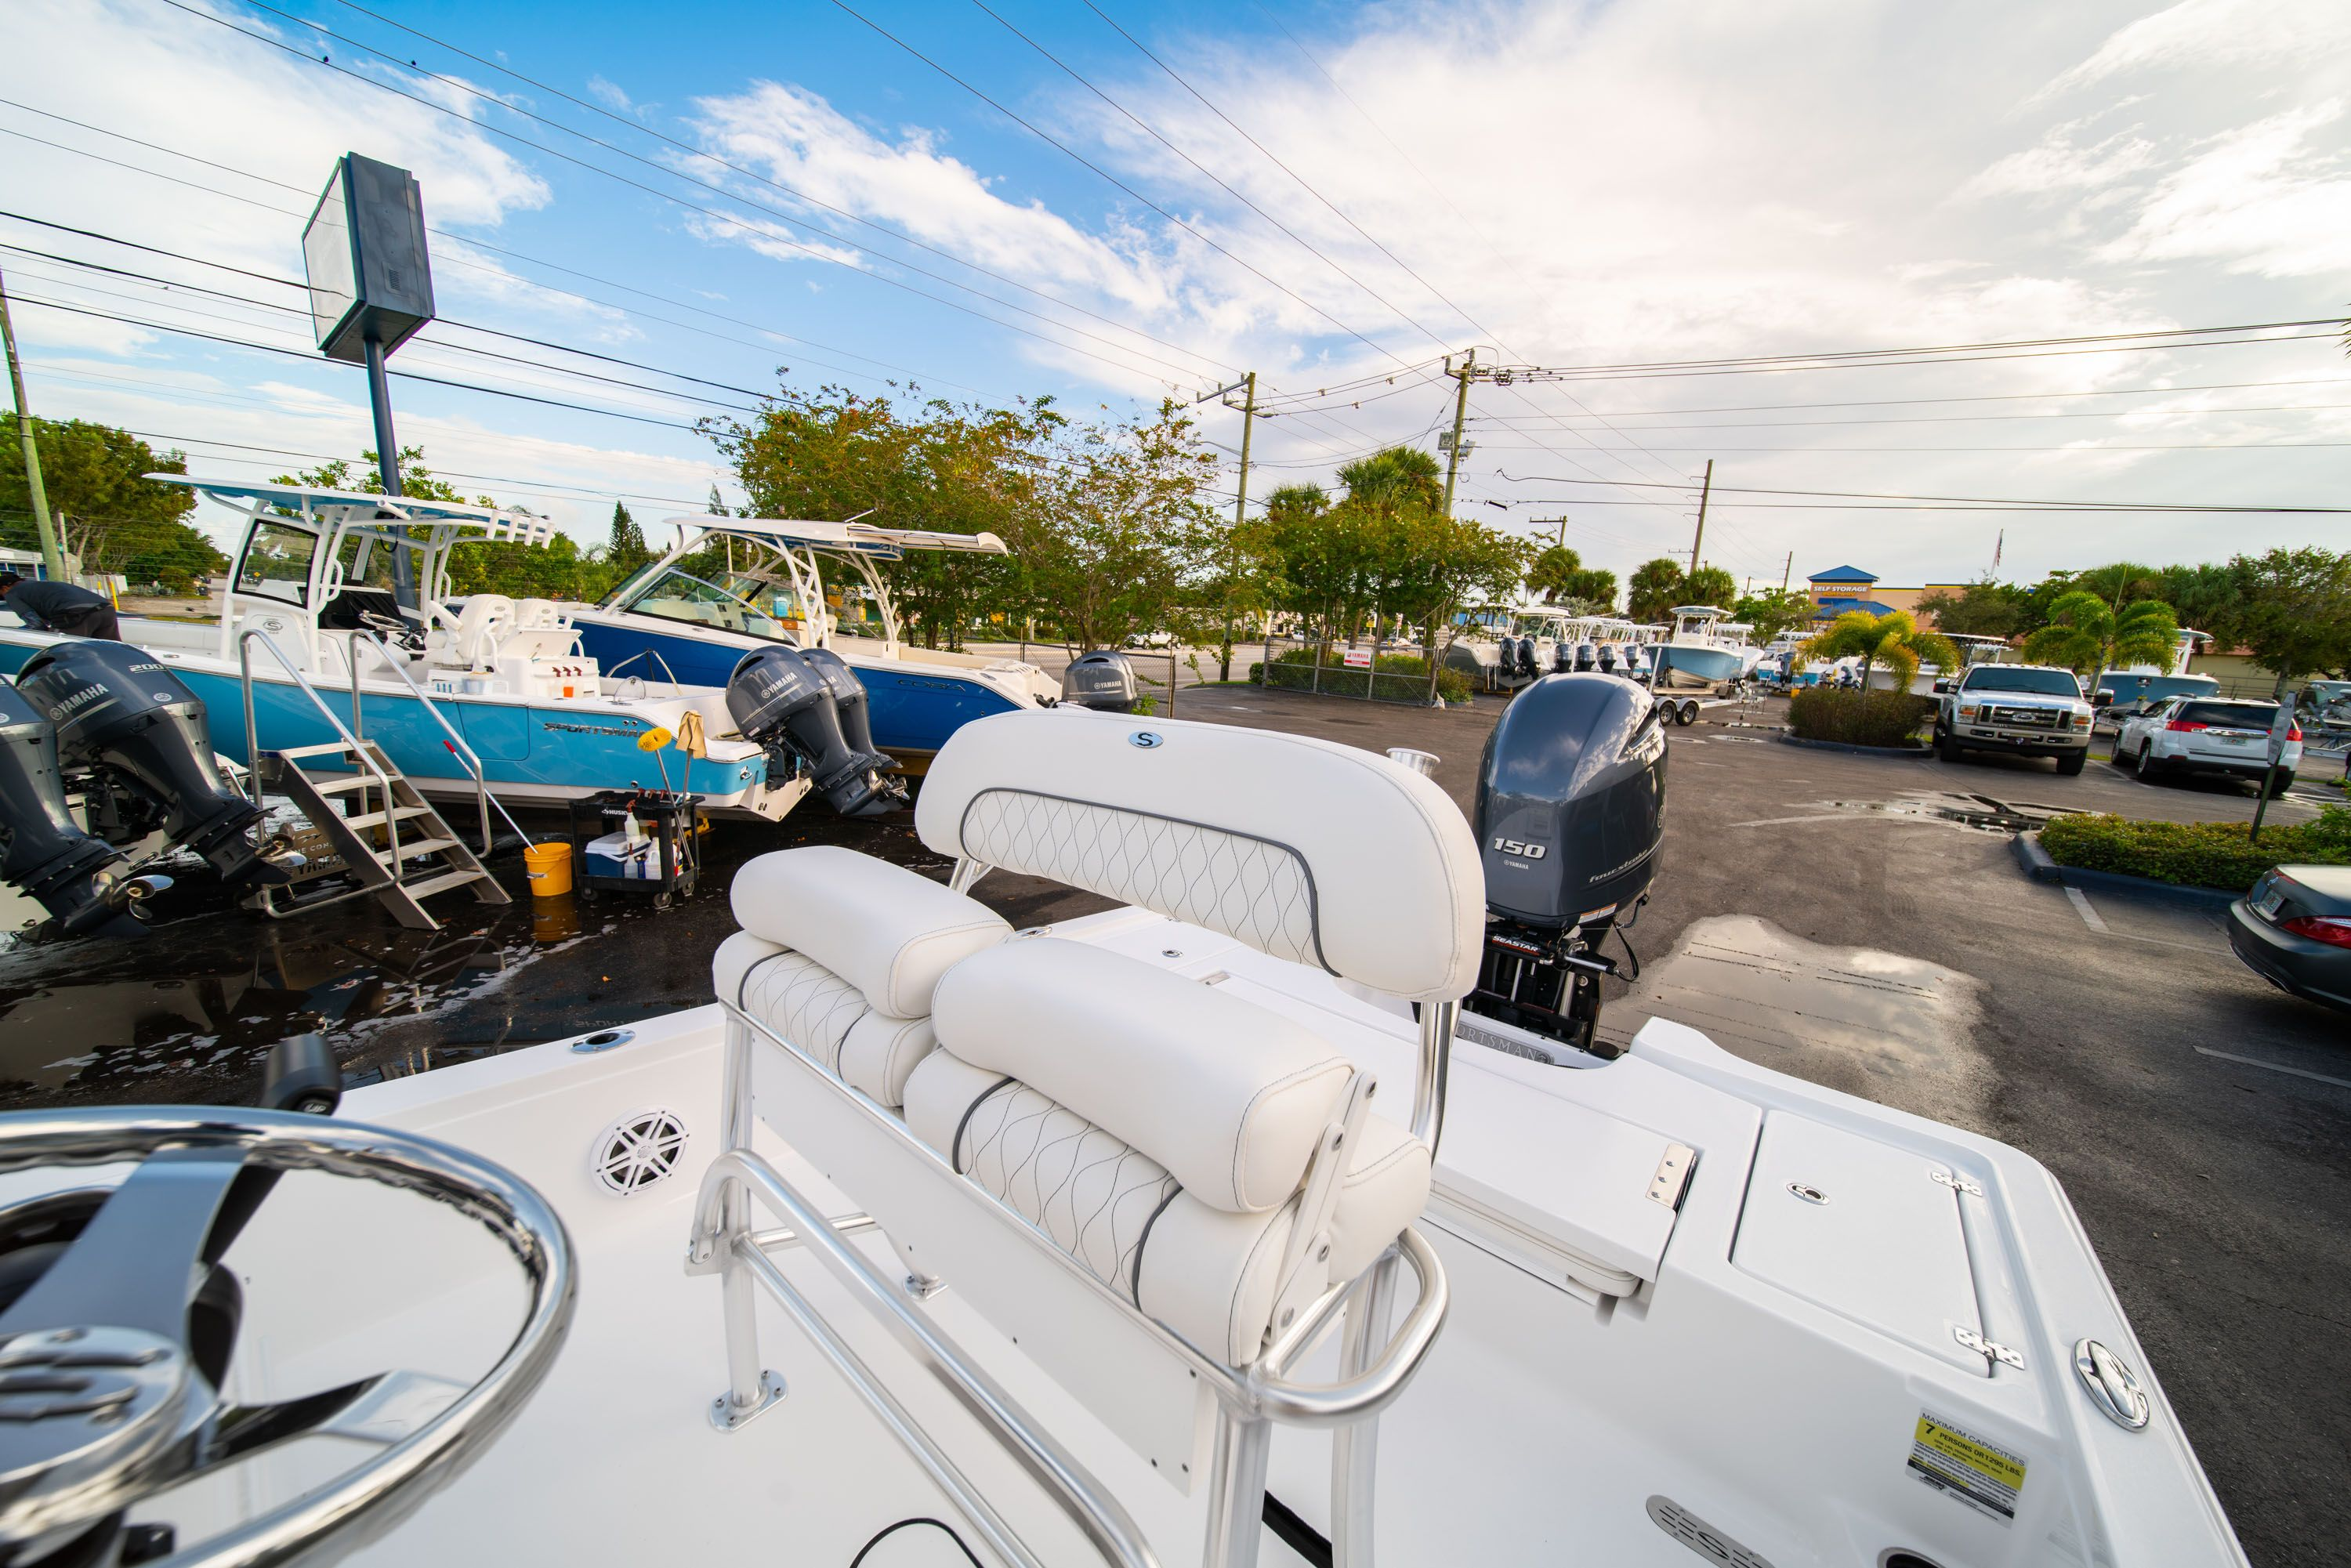 Thumbnail 24 for New 2020 Sportsman Tournament 214 Bay Boat boat for sale in West Palm Beach, FL